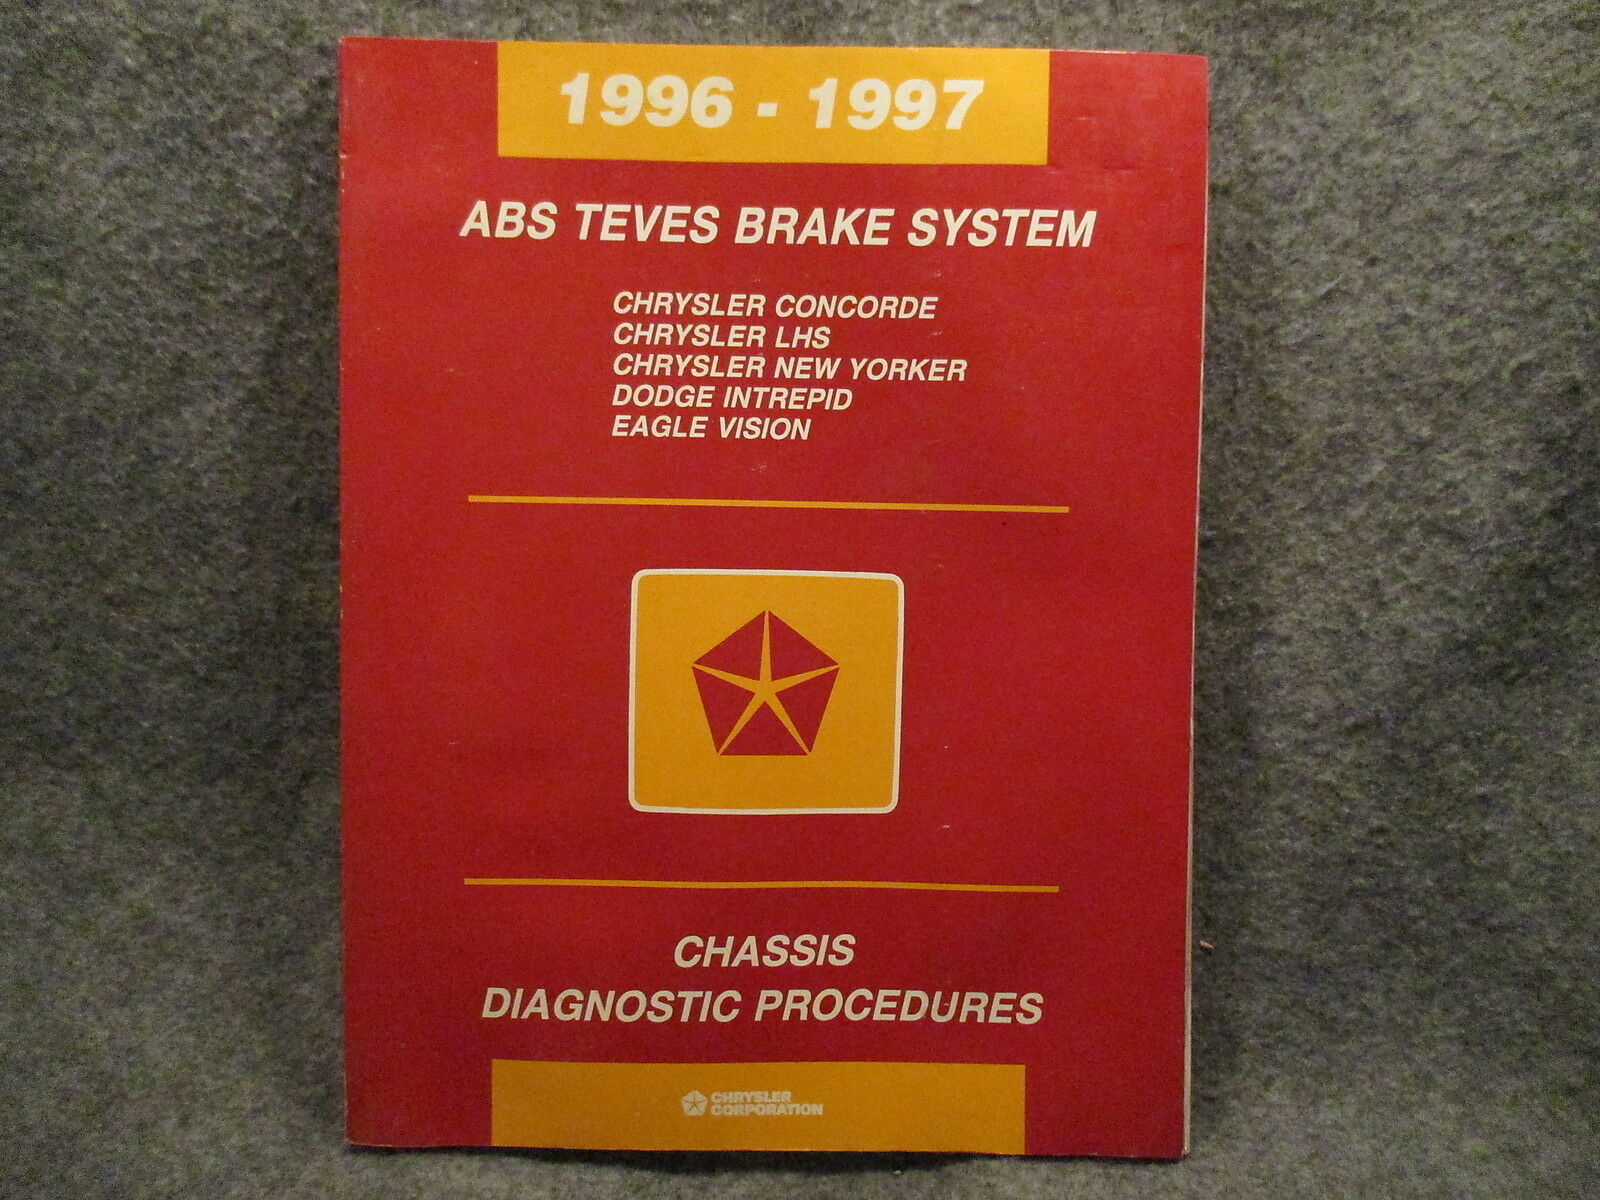 1996-1997 Chrysler Concorde LHS New Yorker ABS Teves Brake Manual Guide  Y445 1 of 4Only 1 available ...